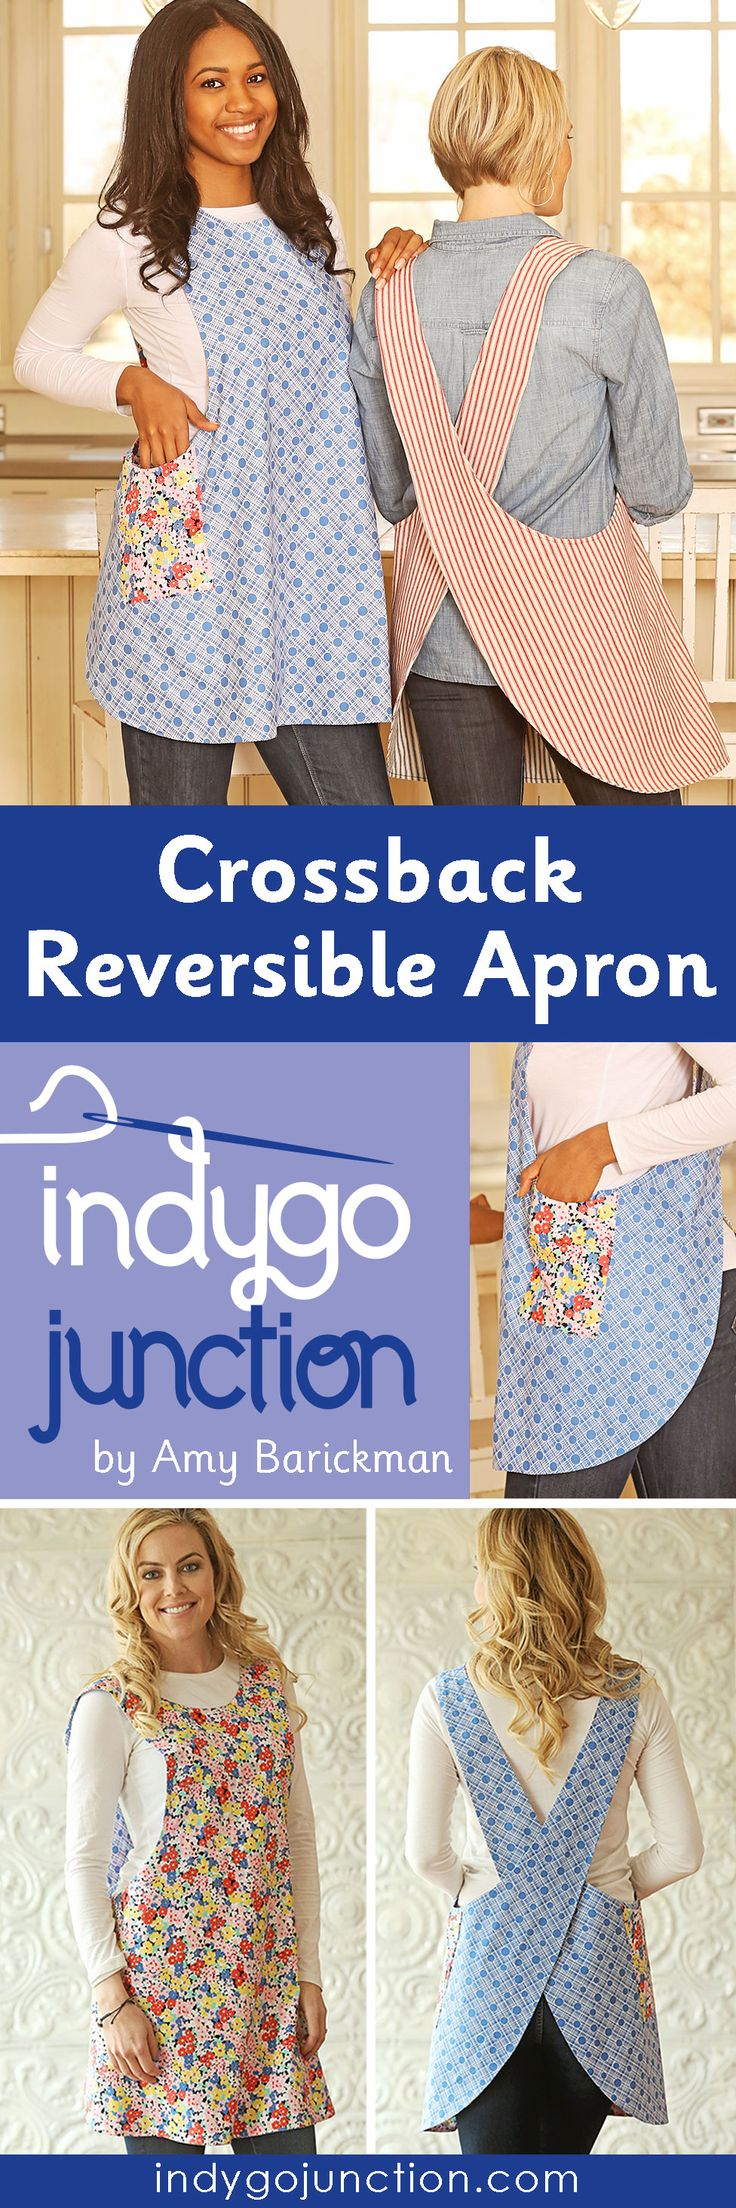 Indygo Junctions Reversible Crossback Apron pattern is a favorite for very good reasons!